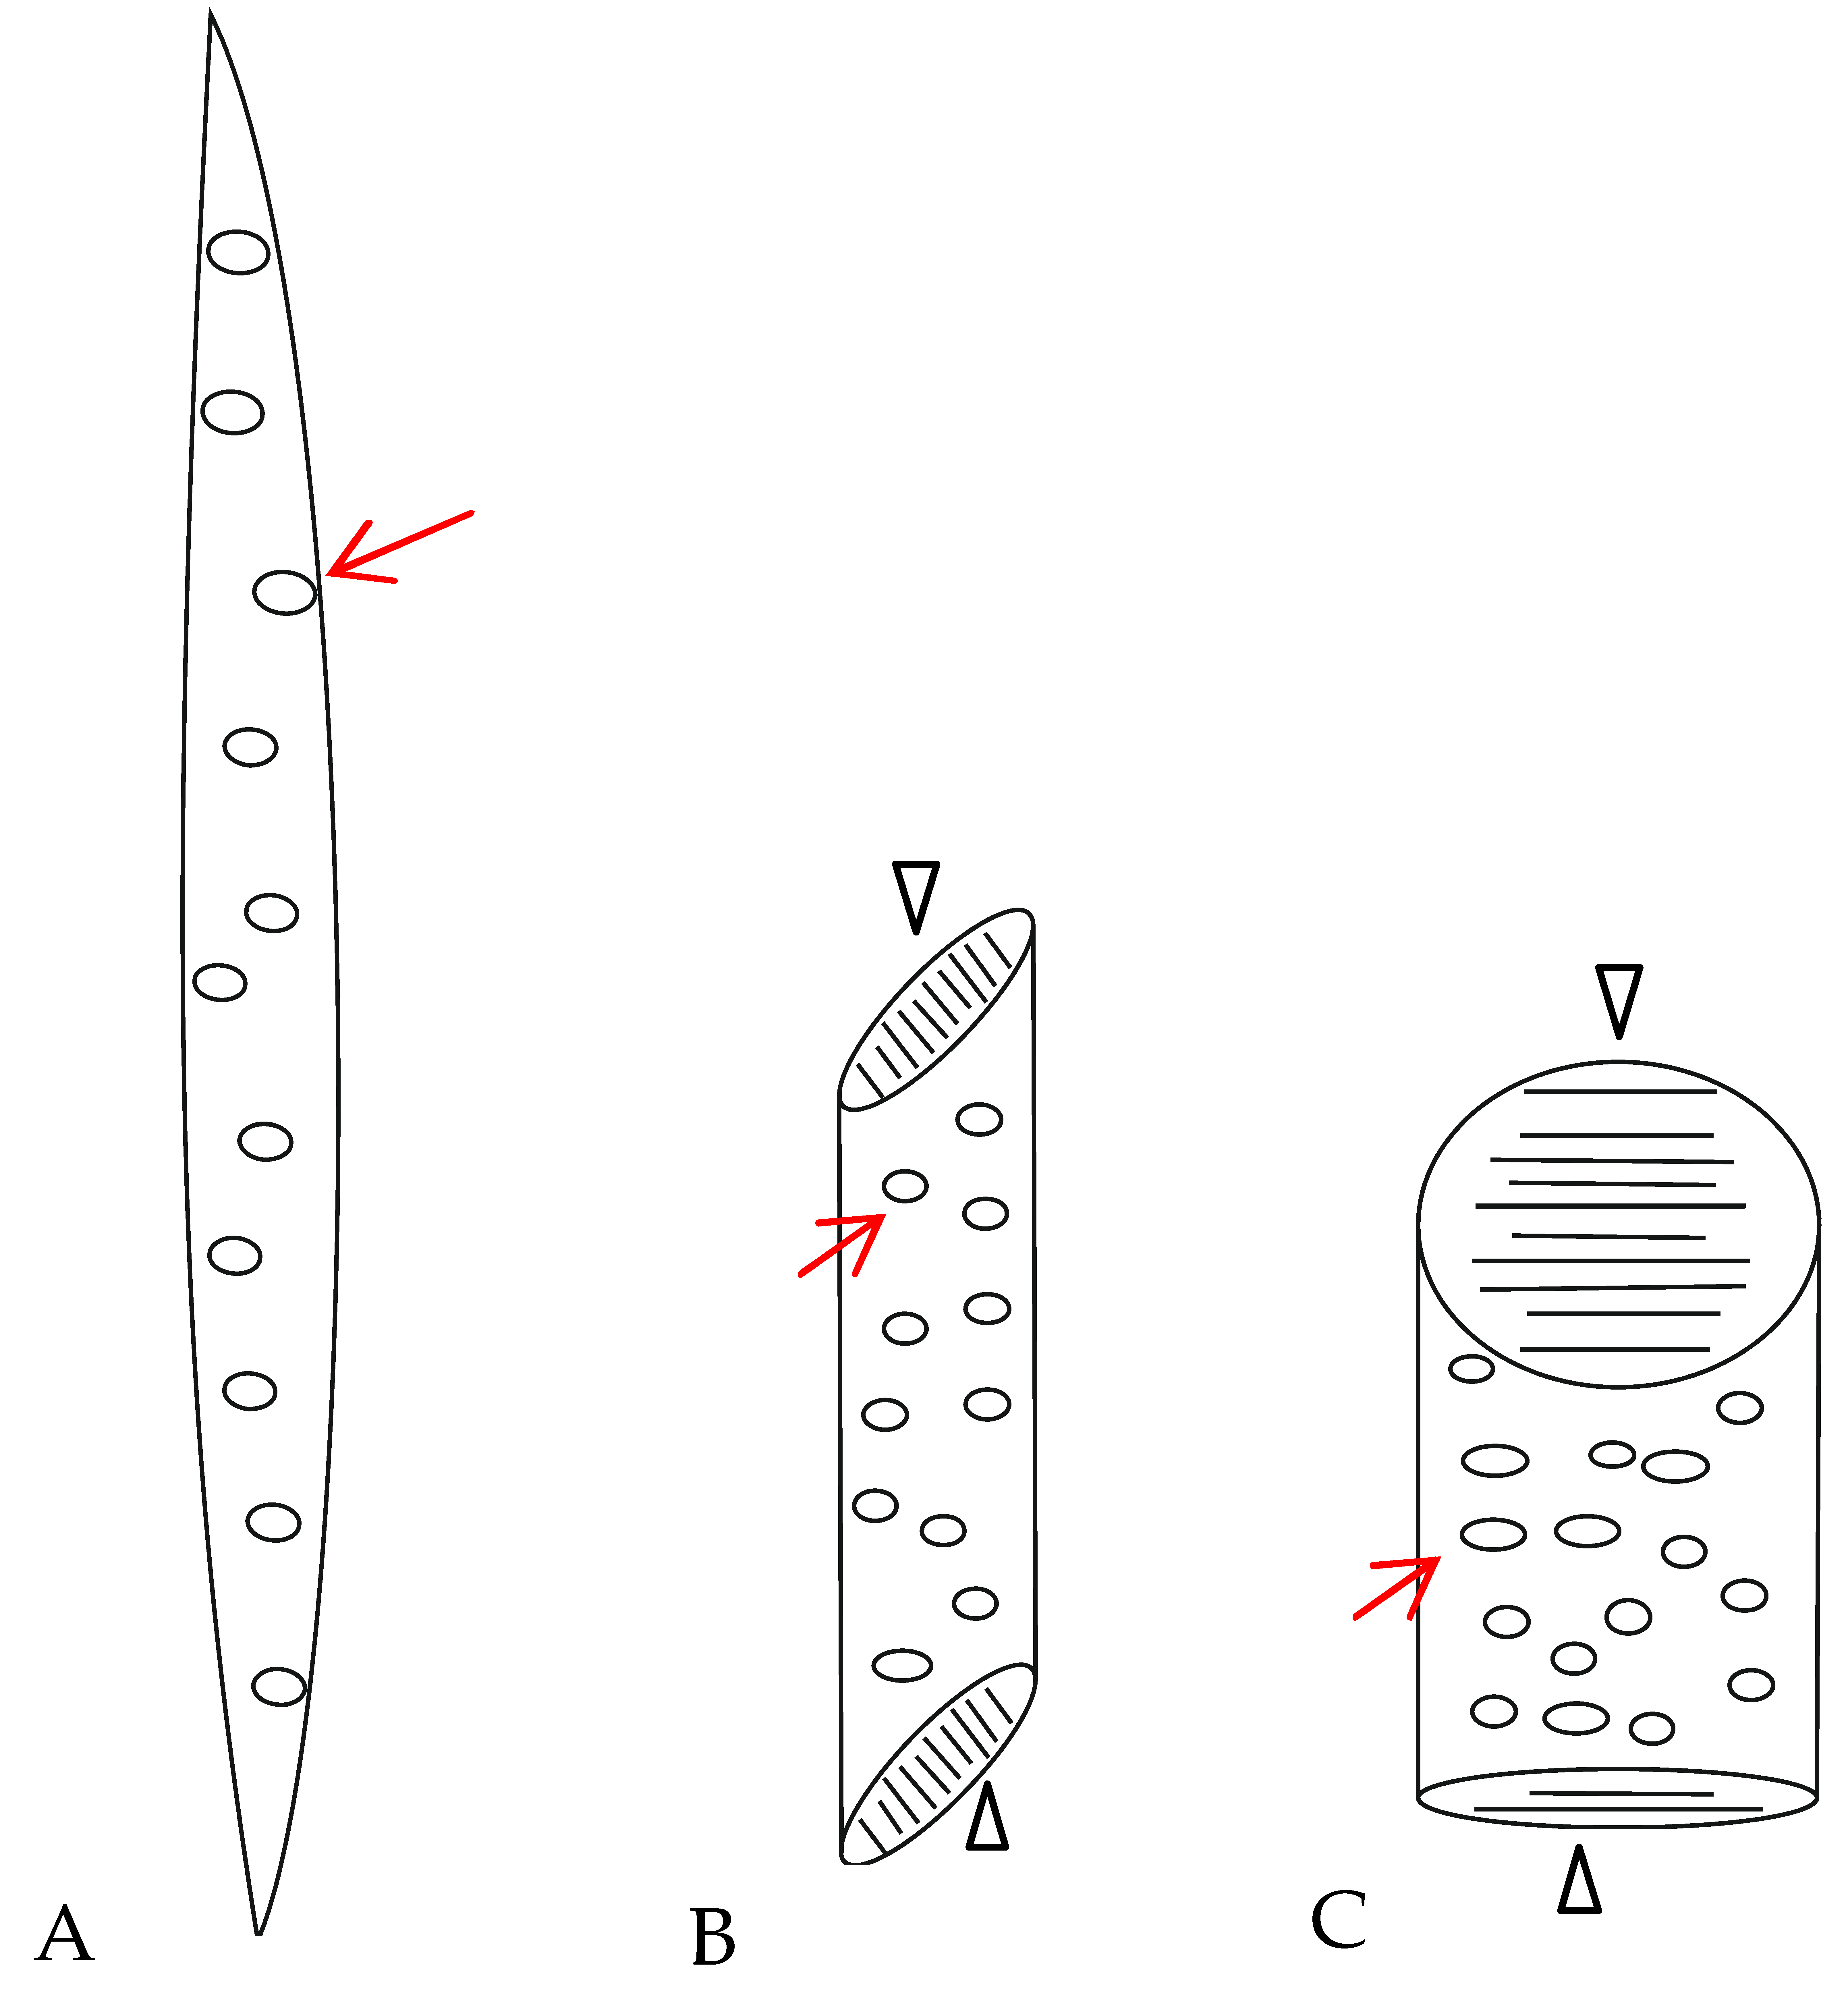 Hydraulic Efficiency And Safety Of Xylem Sap Flow In Relation To